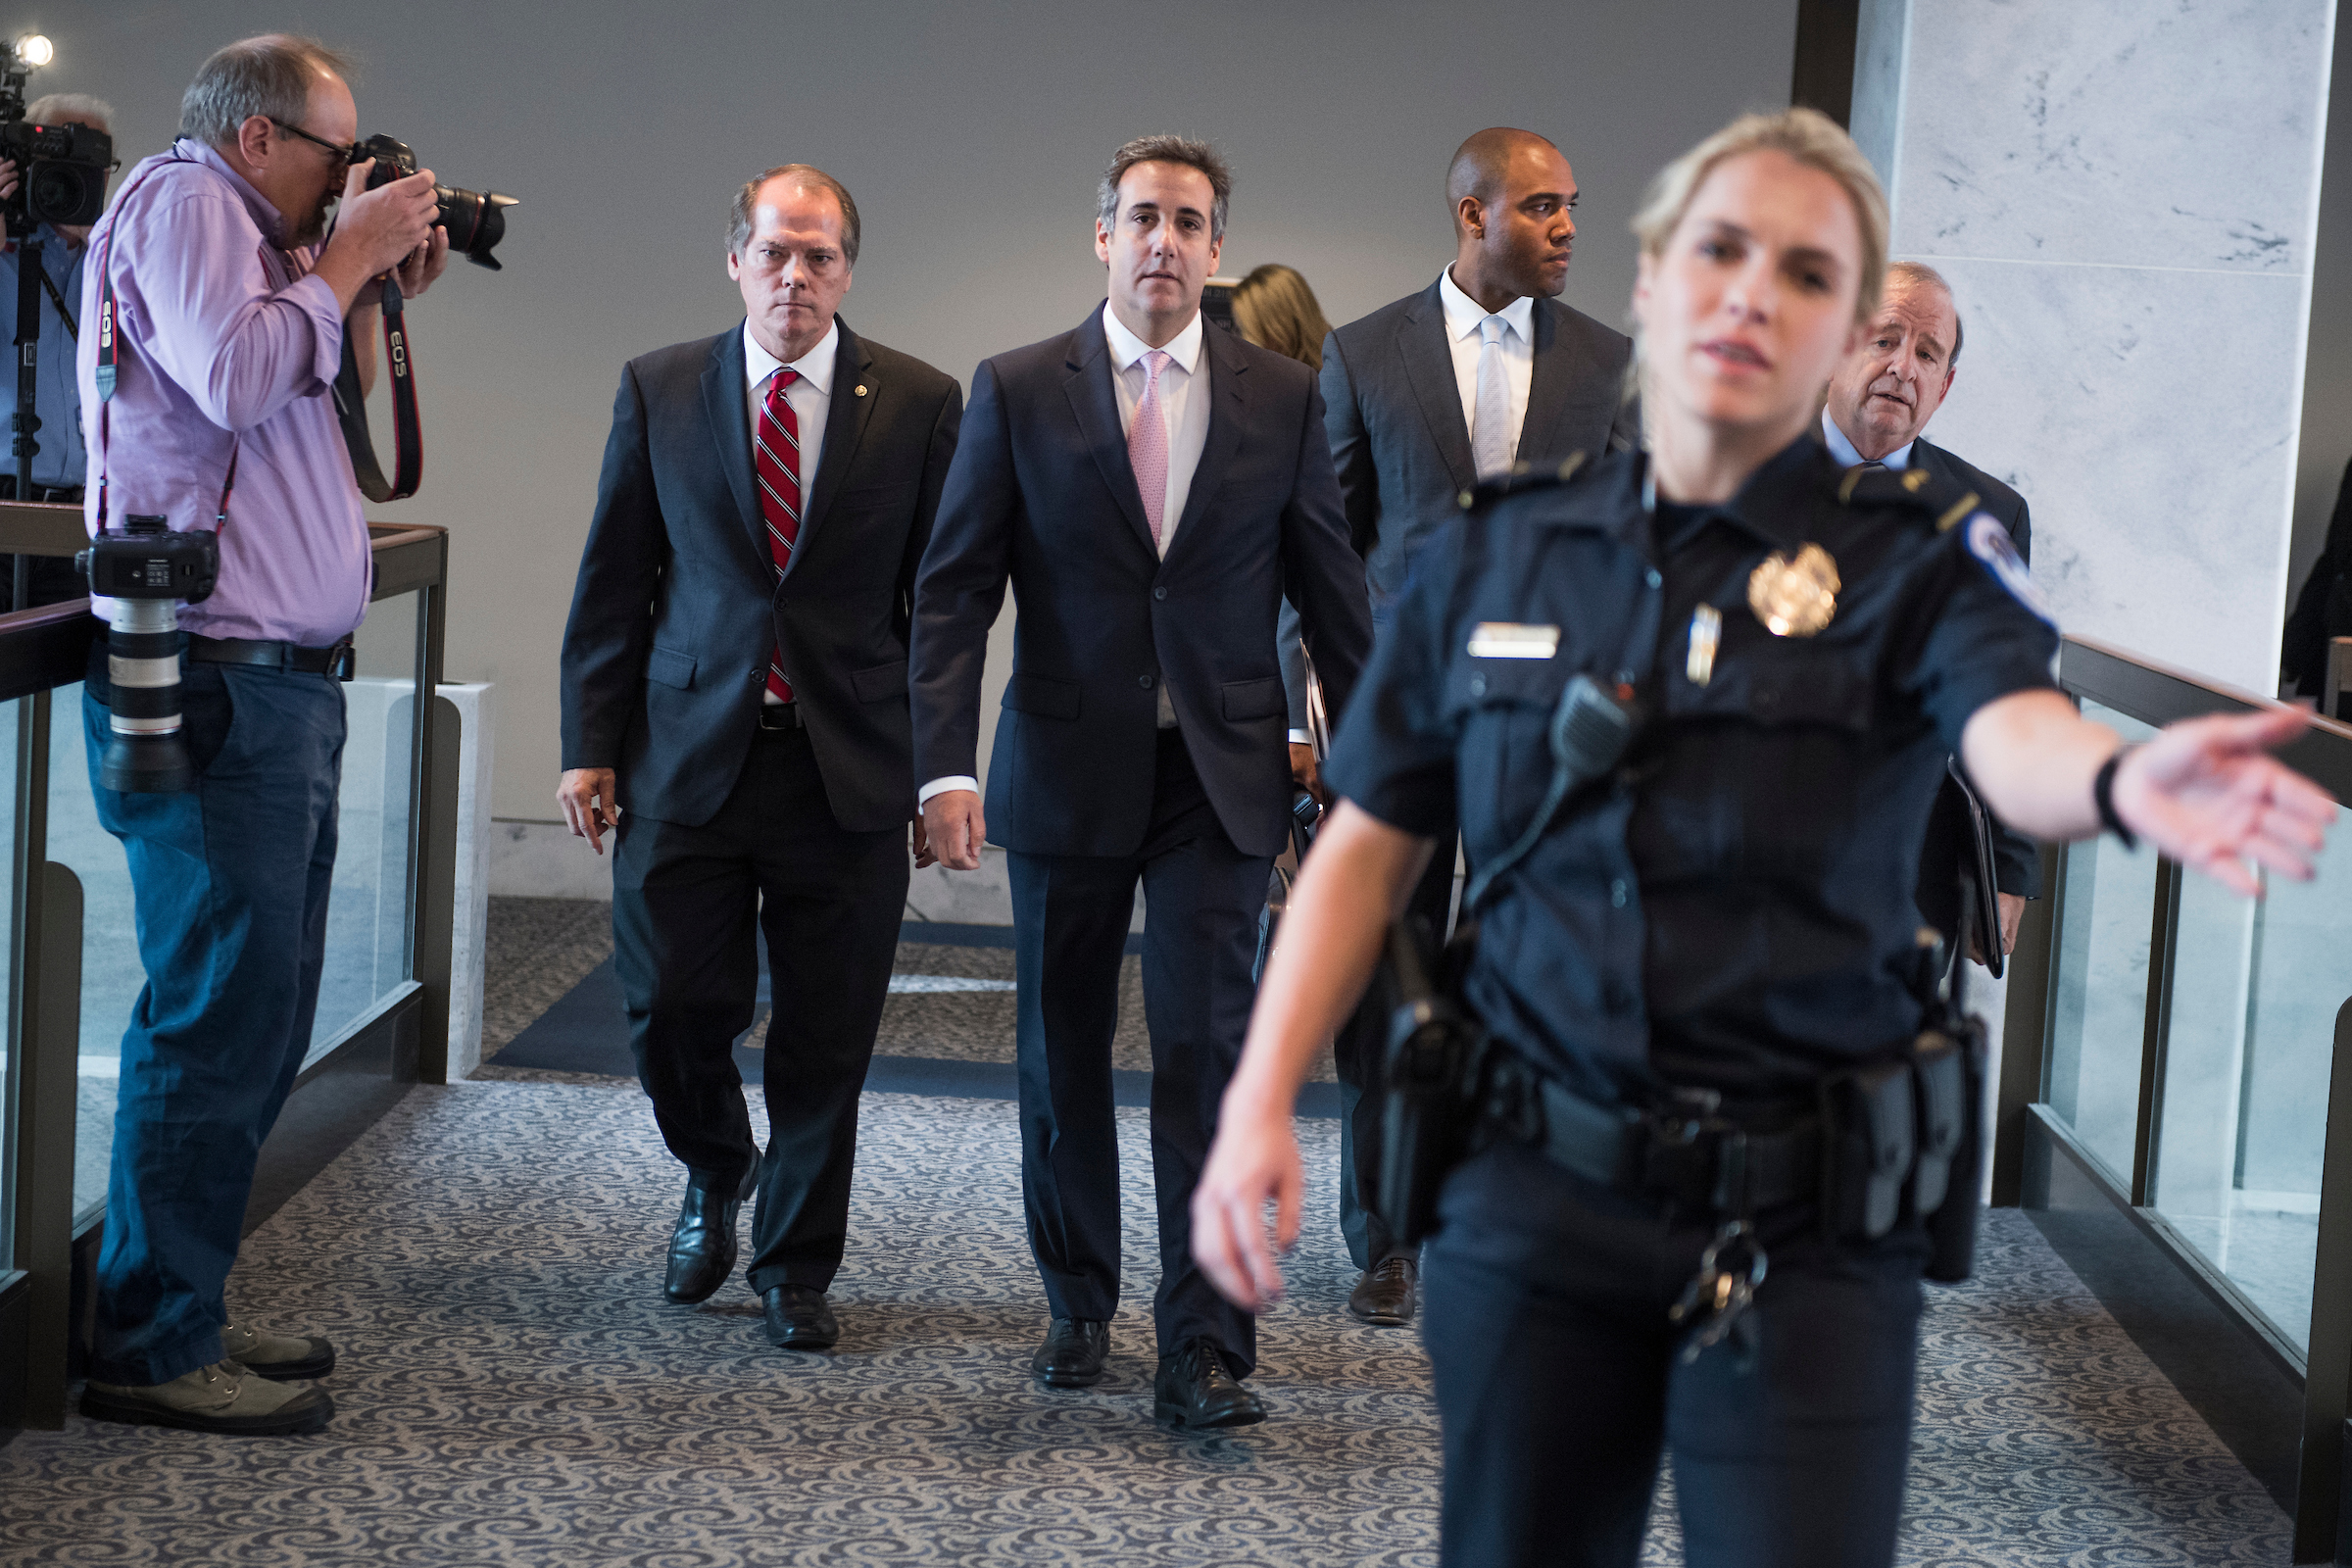 UNITED STATES - SEPTEMBER 19: Michael Cohen, center, a personal attorney for President Trump, leaves Hart Building after his meeting with the Senate Intelligence Committee to discuss Russian interference in the 2016 election was postponed on September 19, 2017. (Photo By Tom Williams/CQ Roll Call)